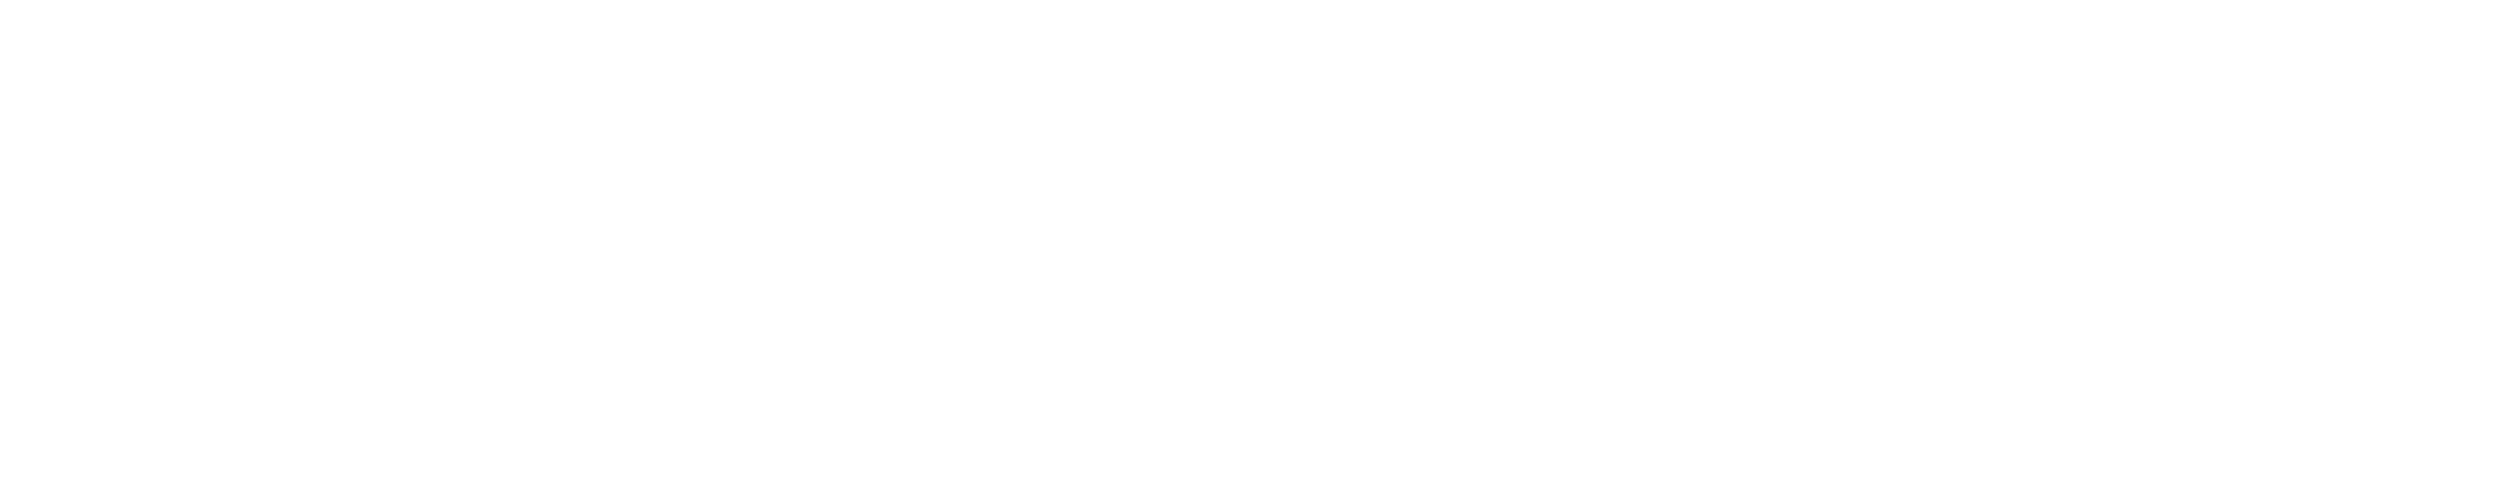 BSR-FooterLogo.png